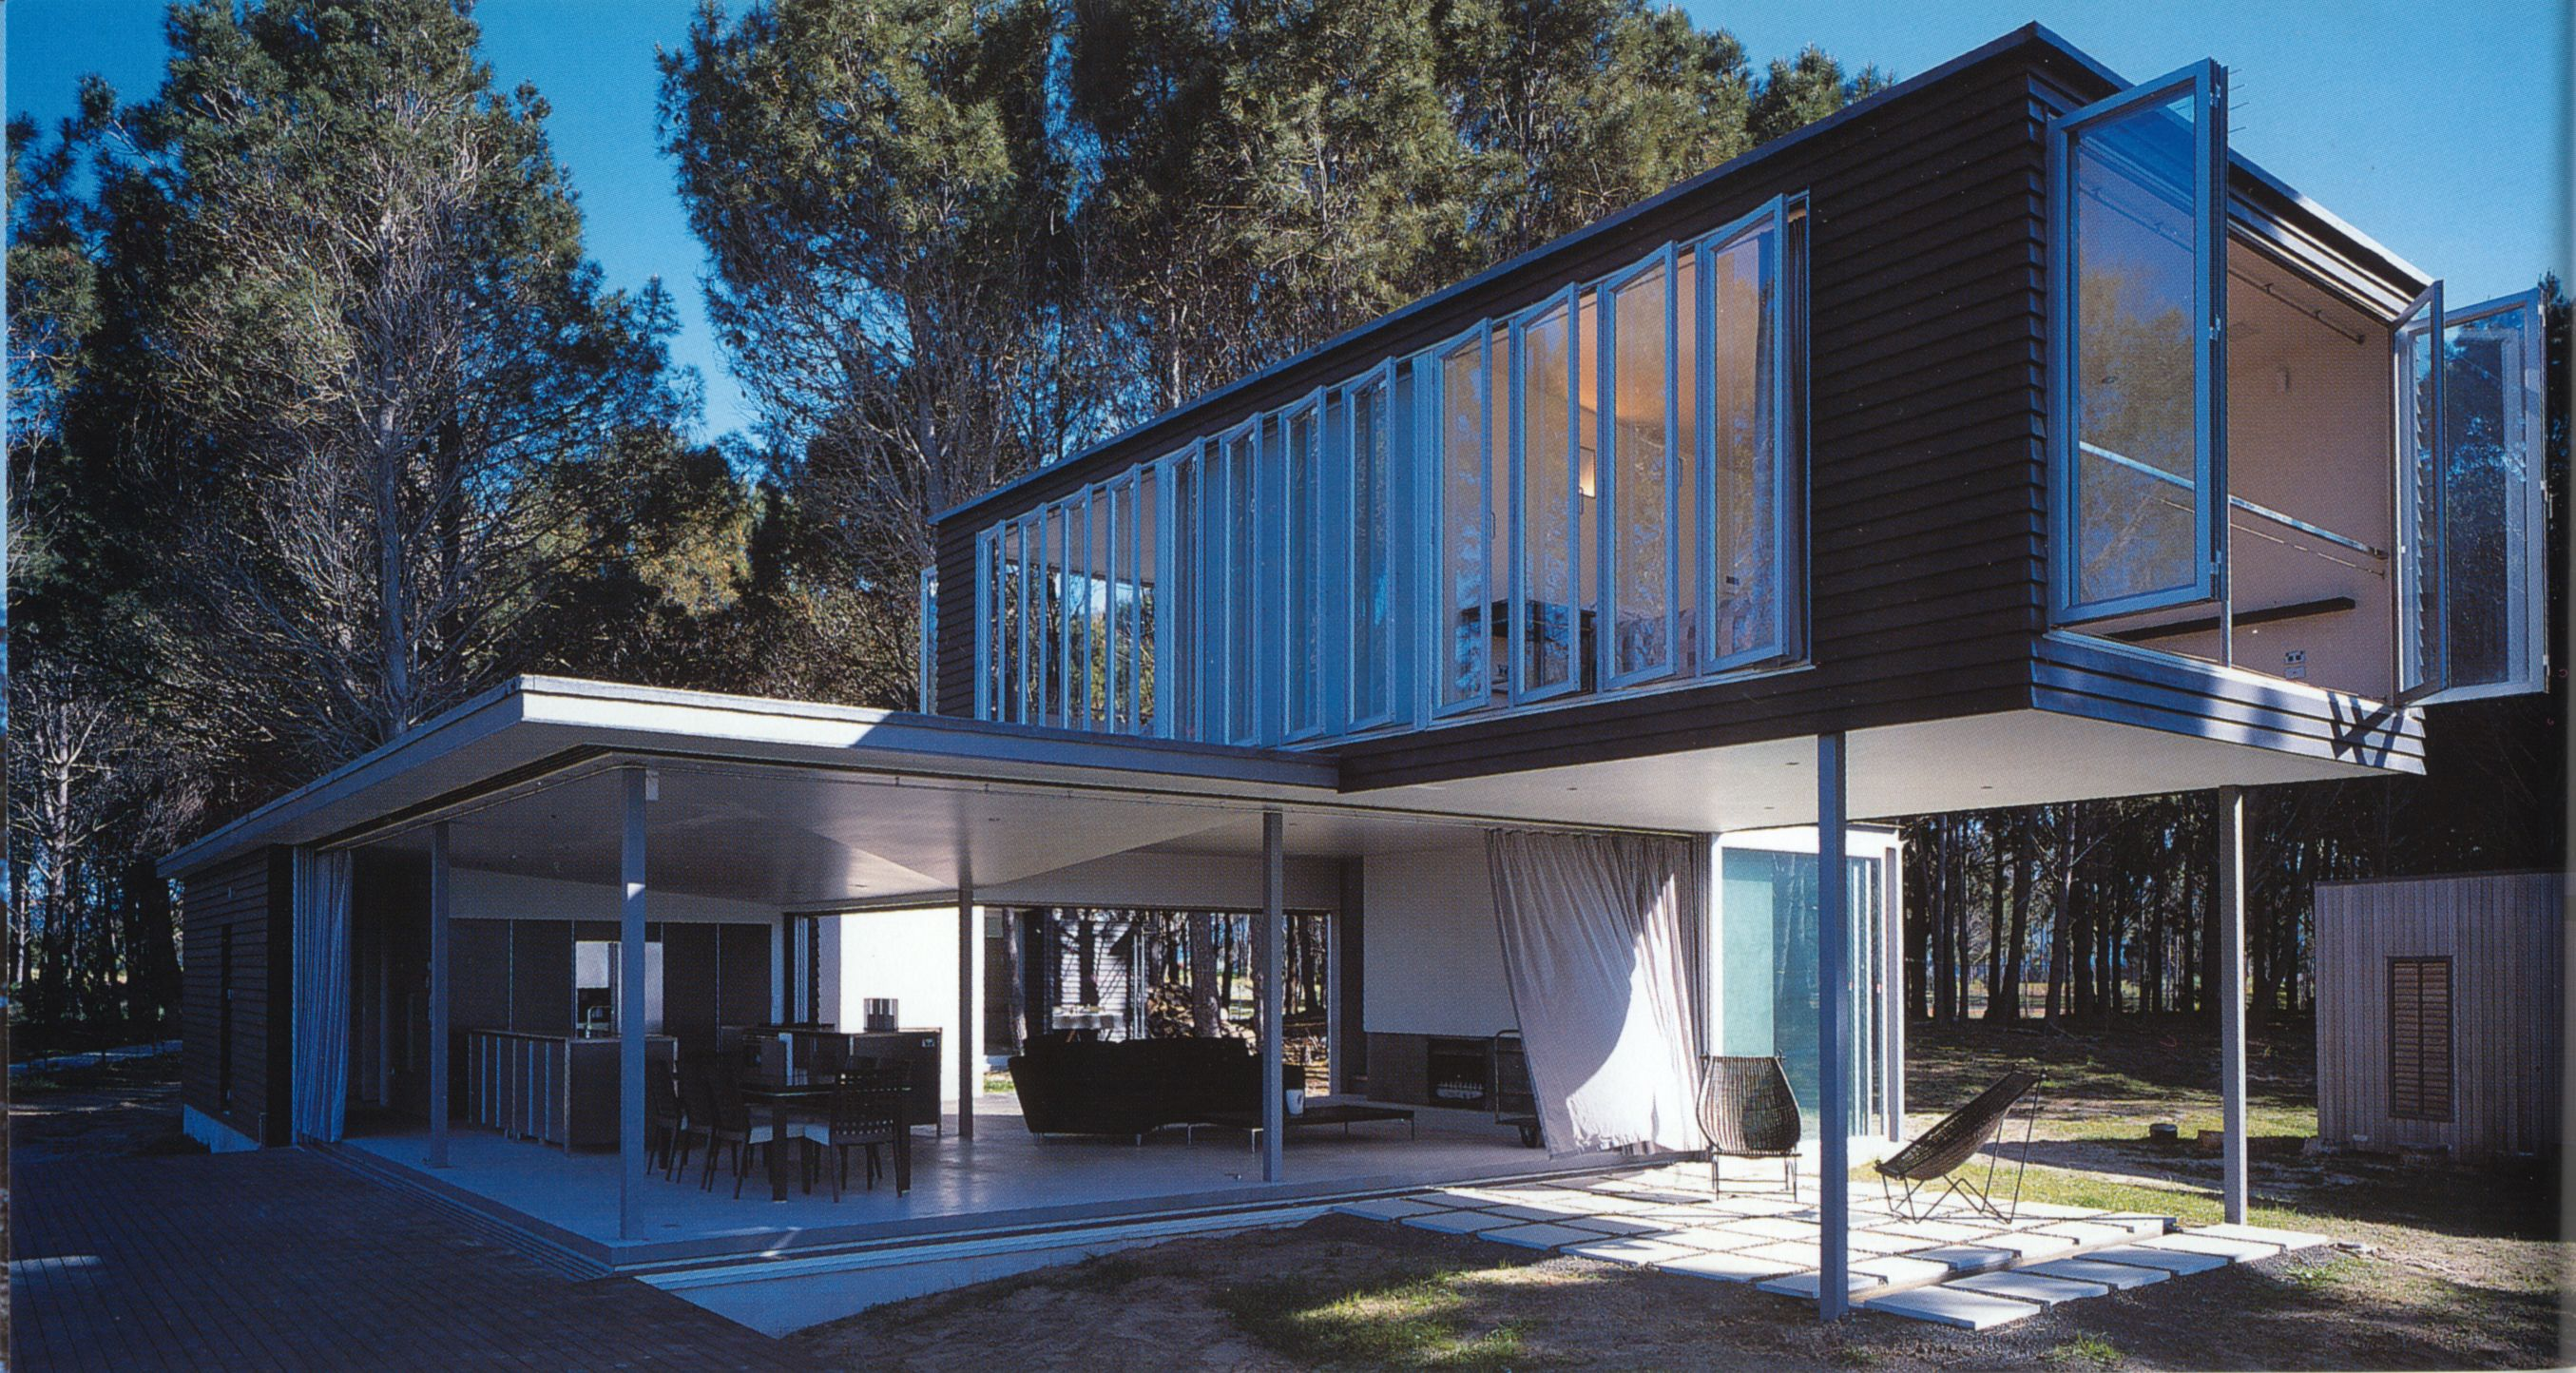 Funky house in NZ (With images) House design, Container